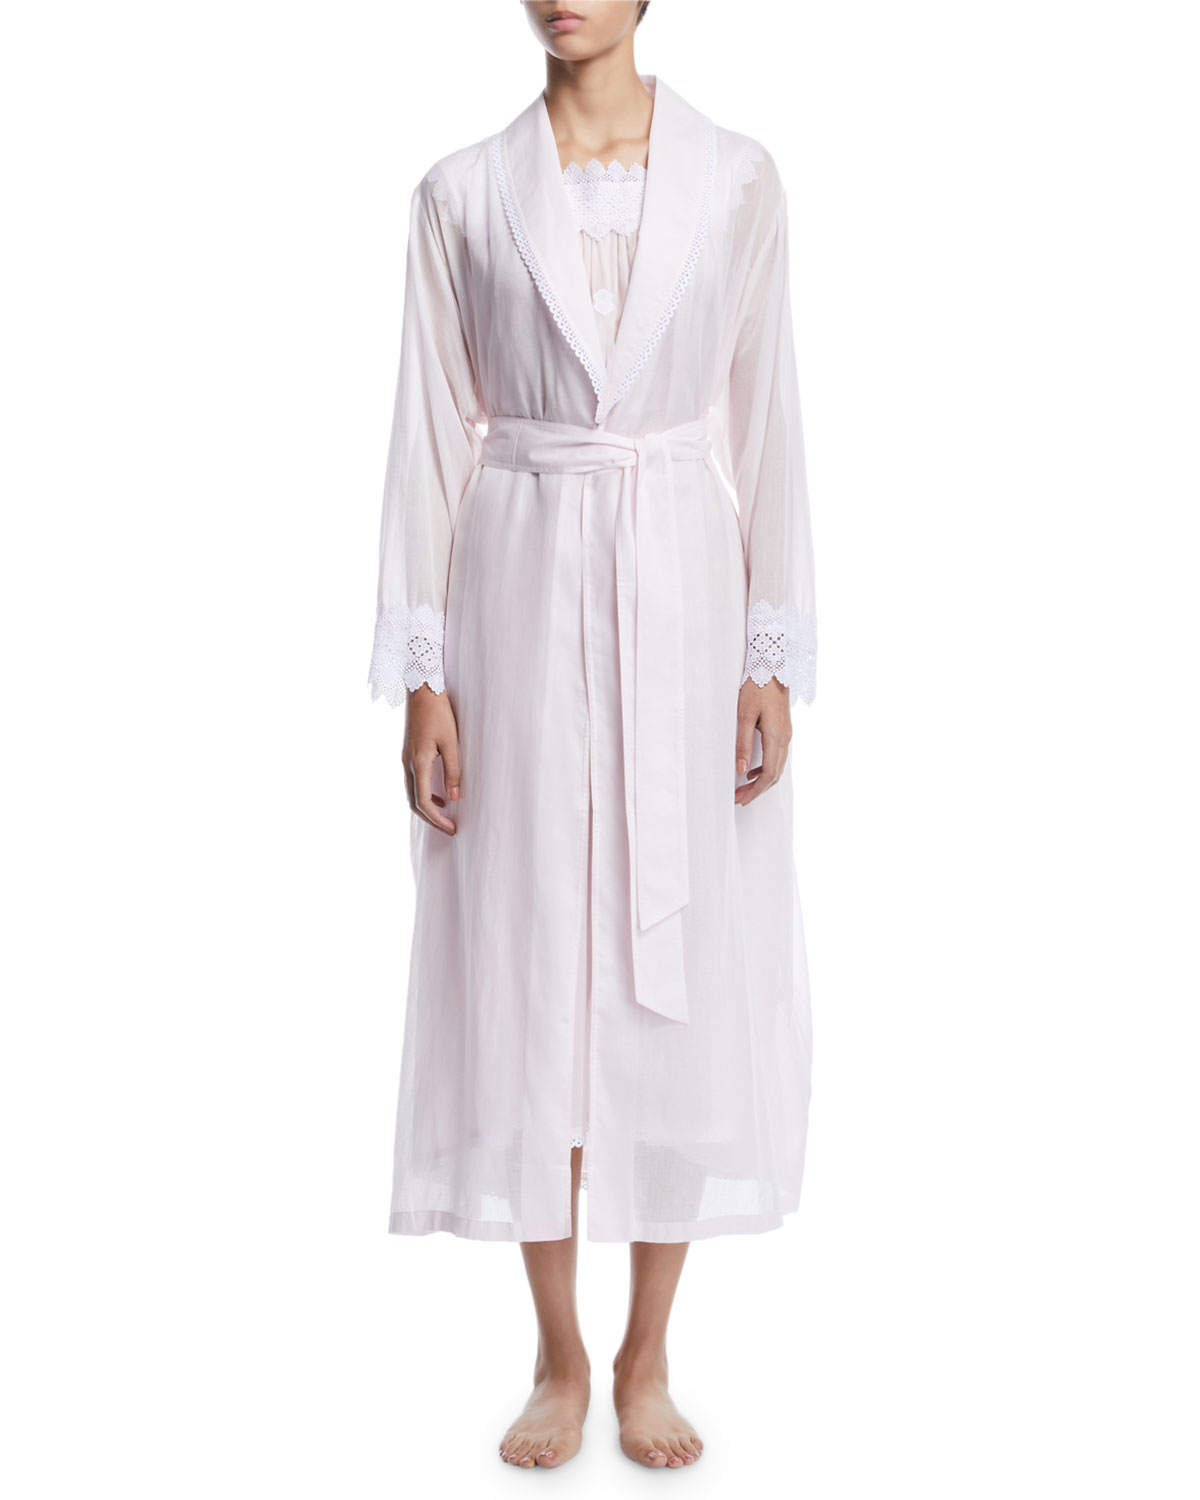 CELESTINE Ninifee Long Lace-Trim Robe in Pink